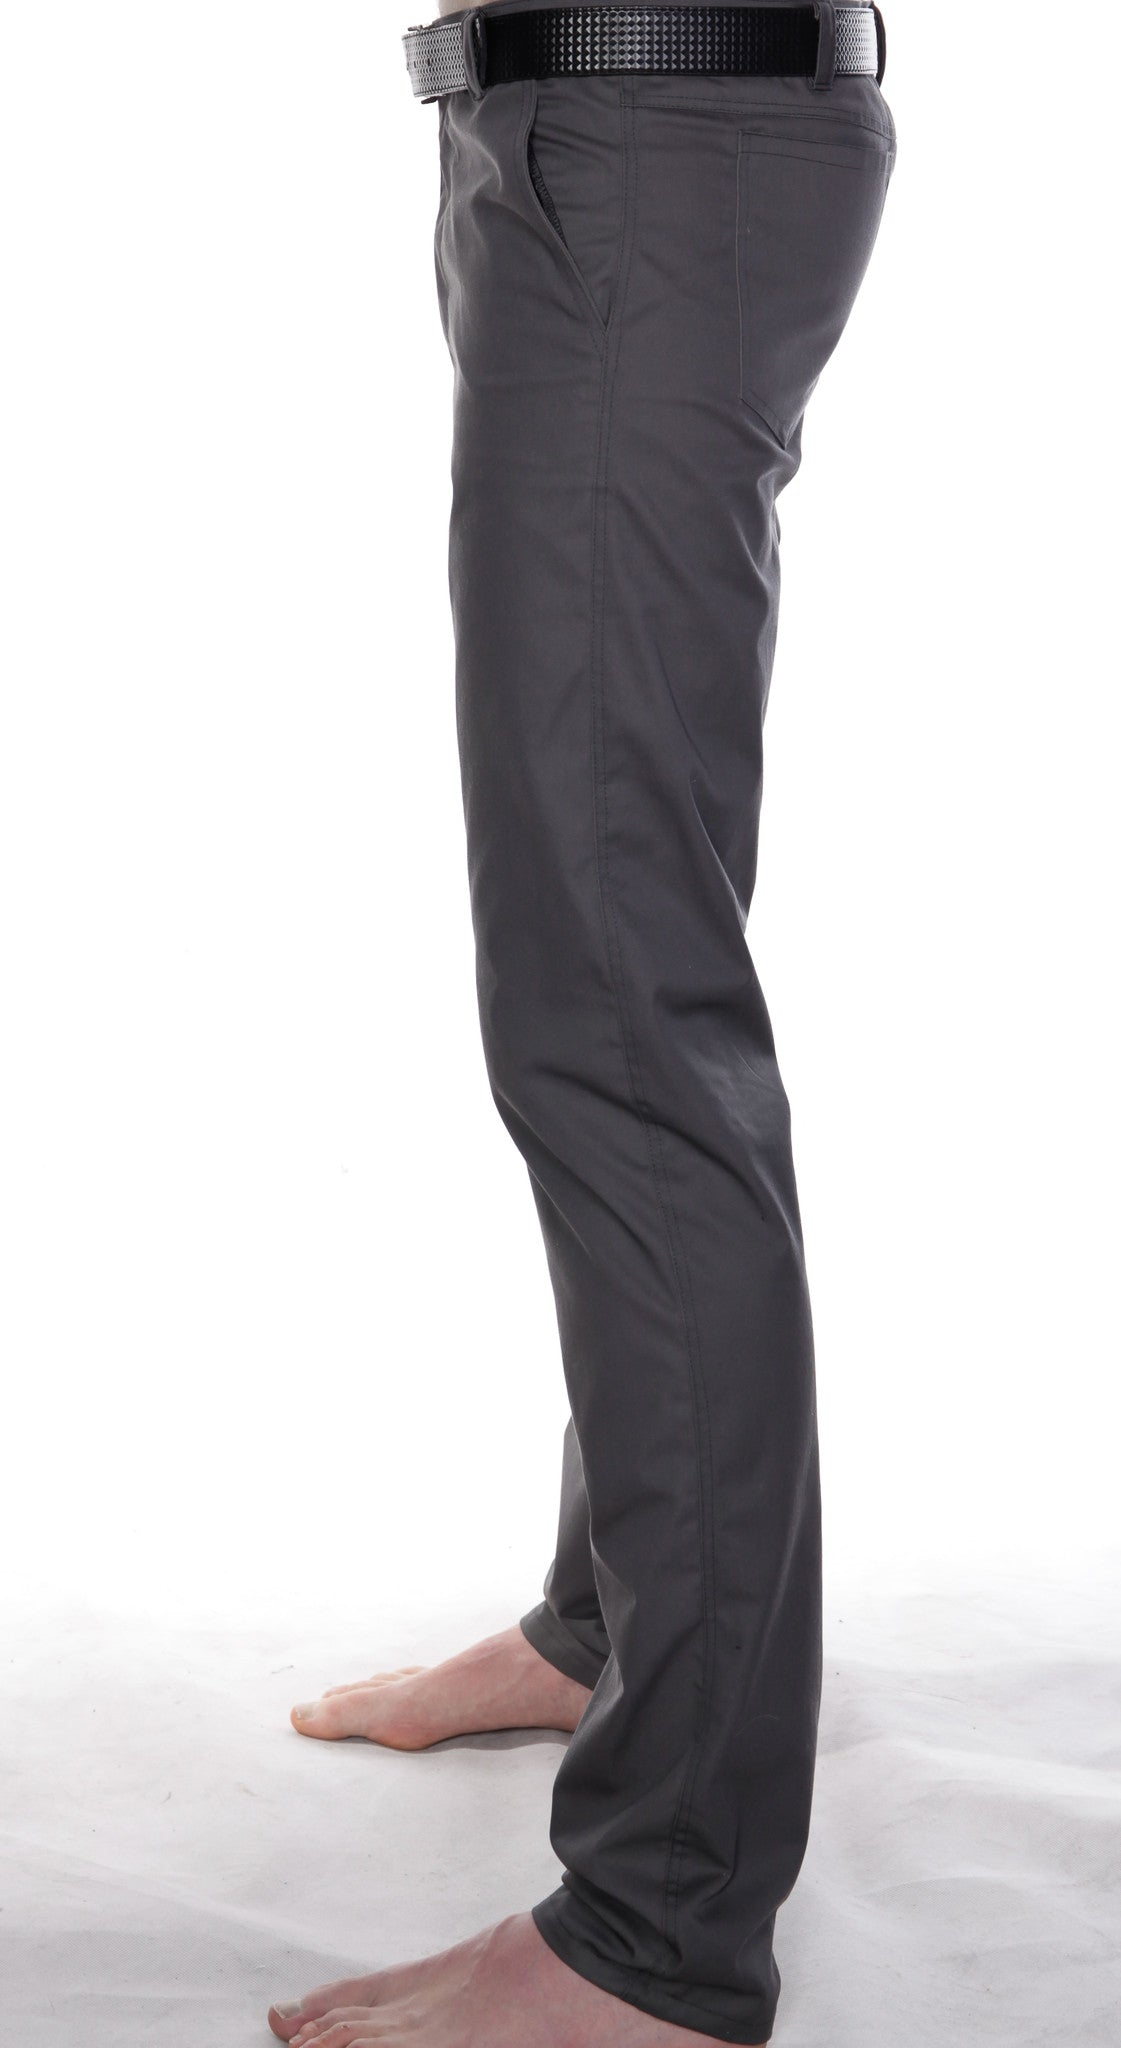 Ayce Chinos - Charcoal